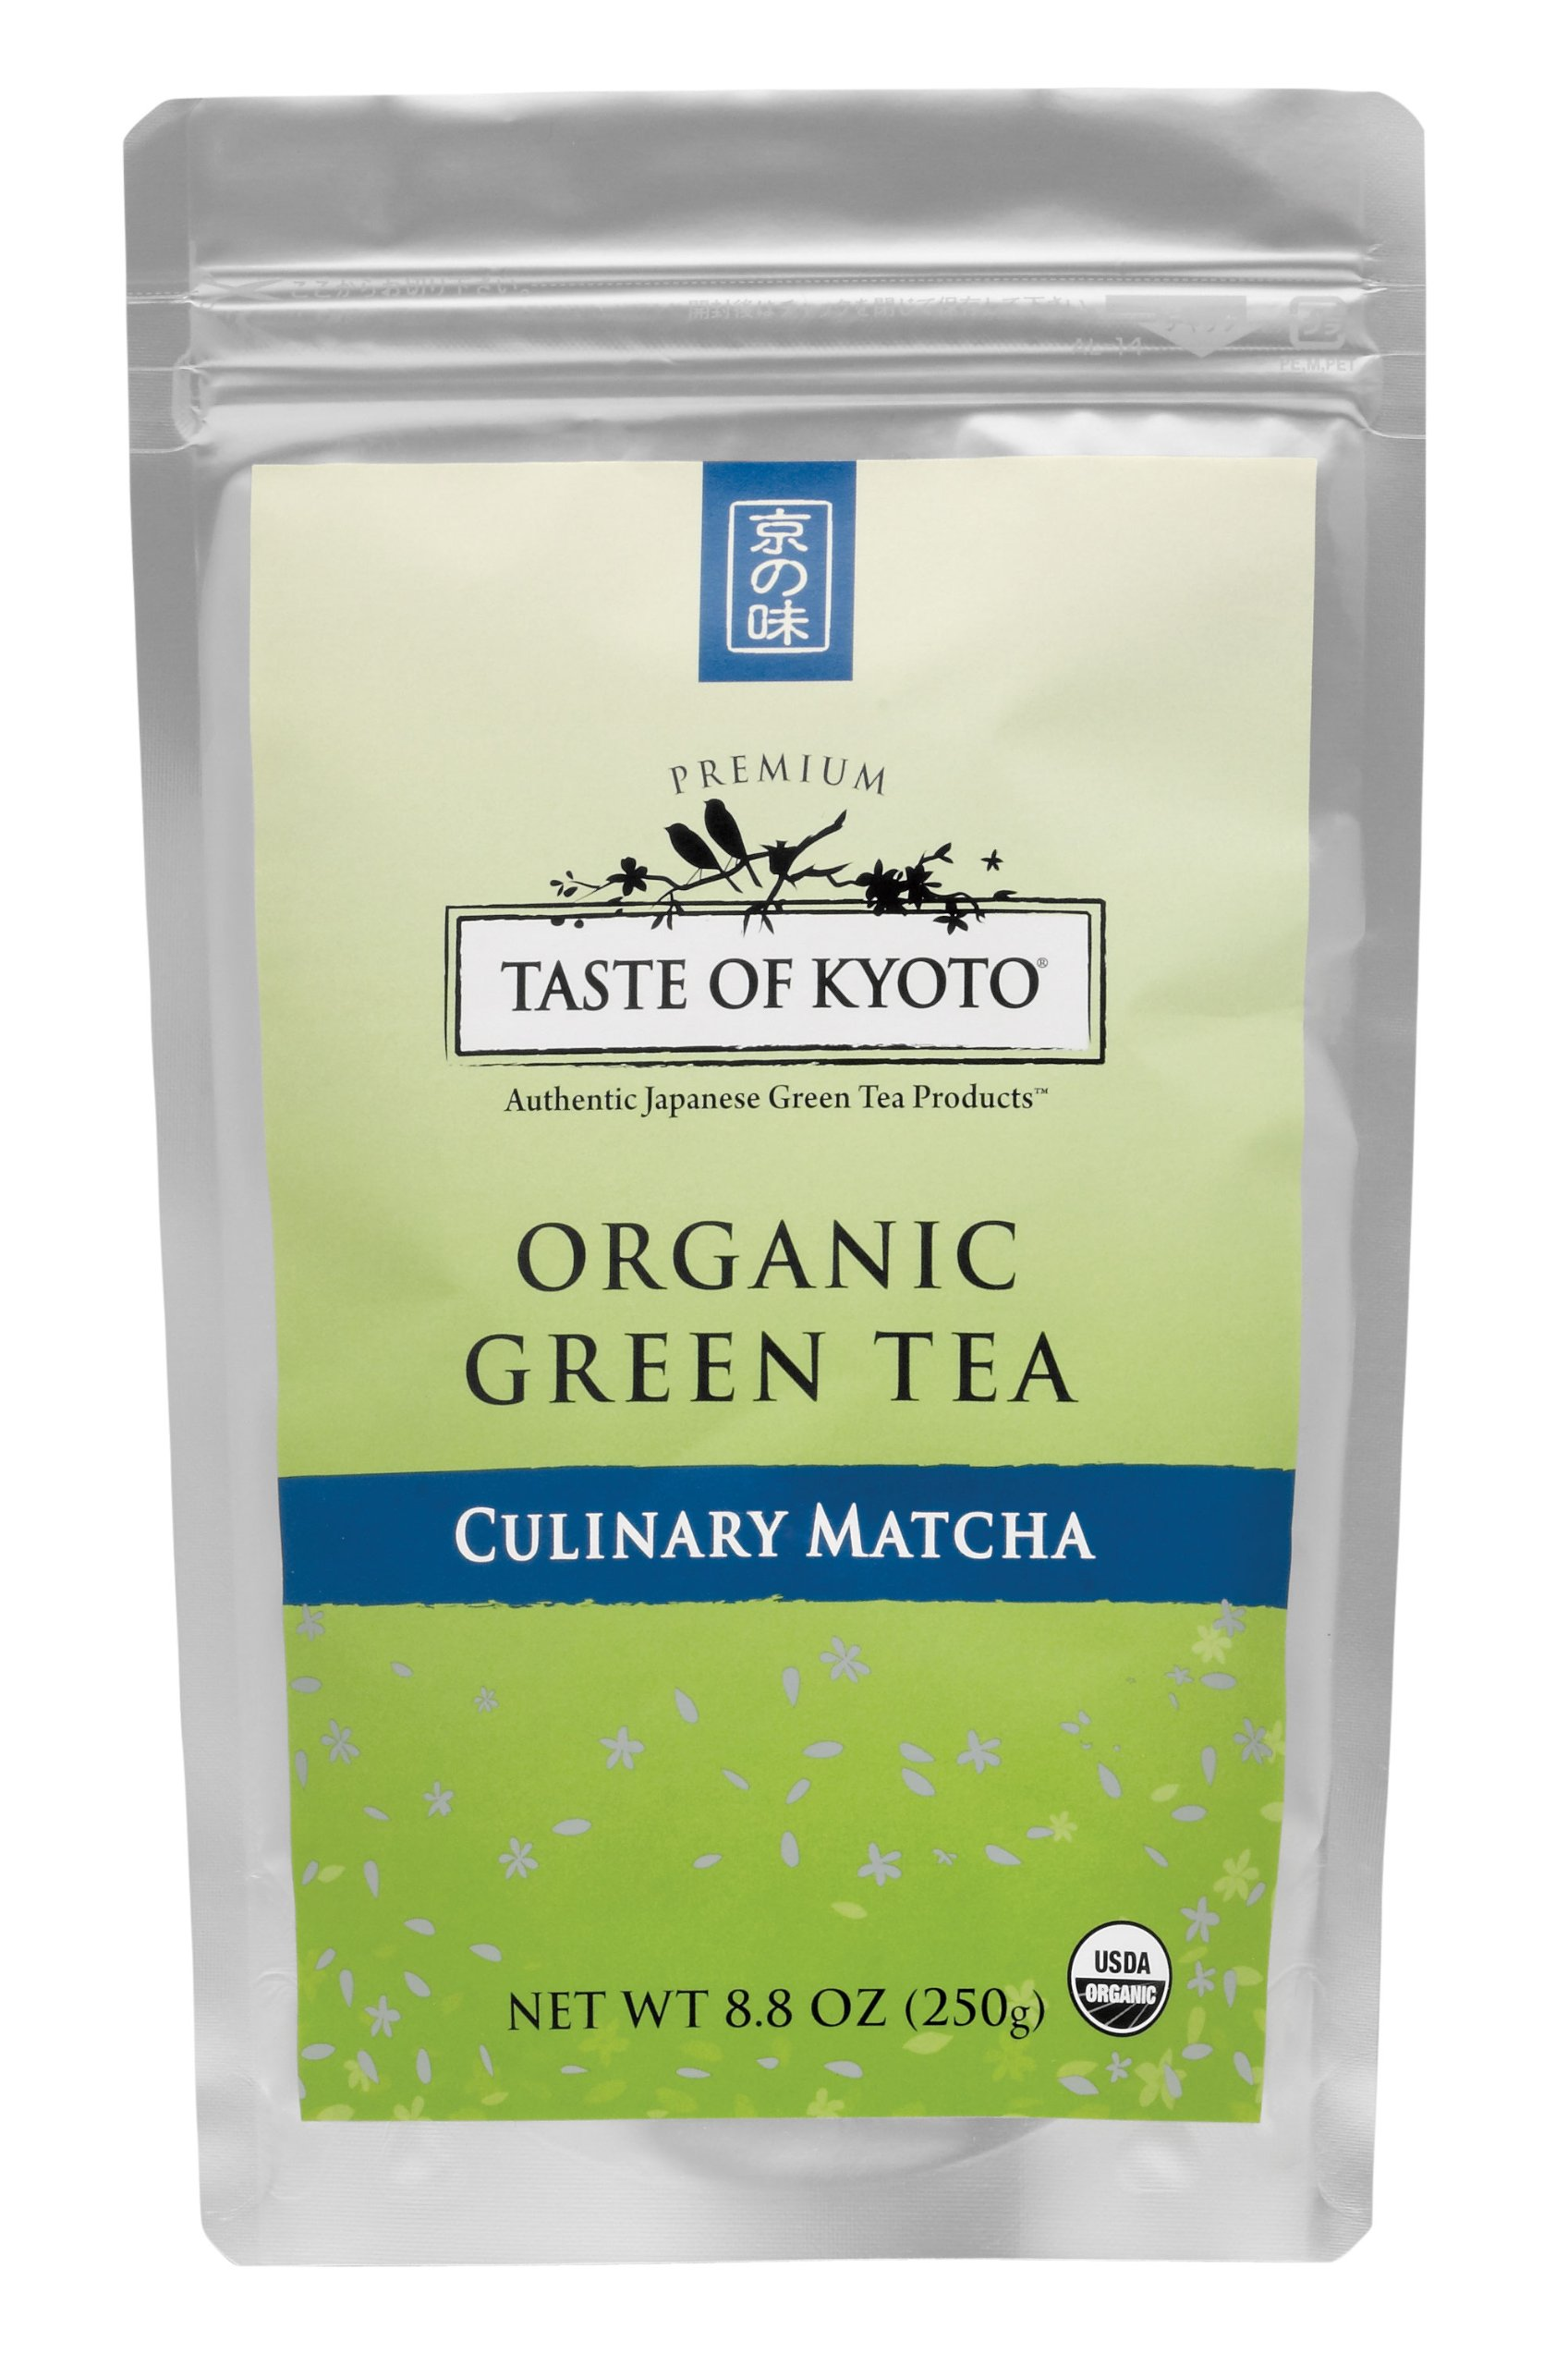 TASTE OF KYOTO Matcha Green Tea, Bulk Culinary, 8.80 Ounce by Taste of Kyoto (Image #1)